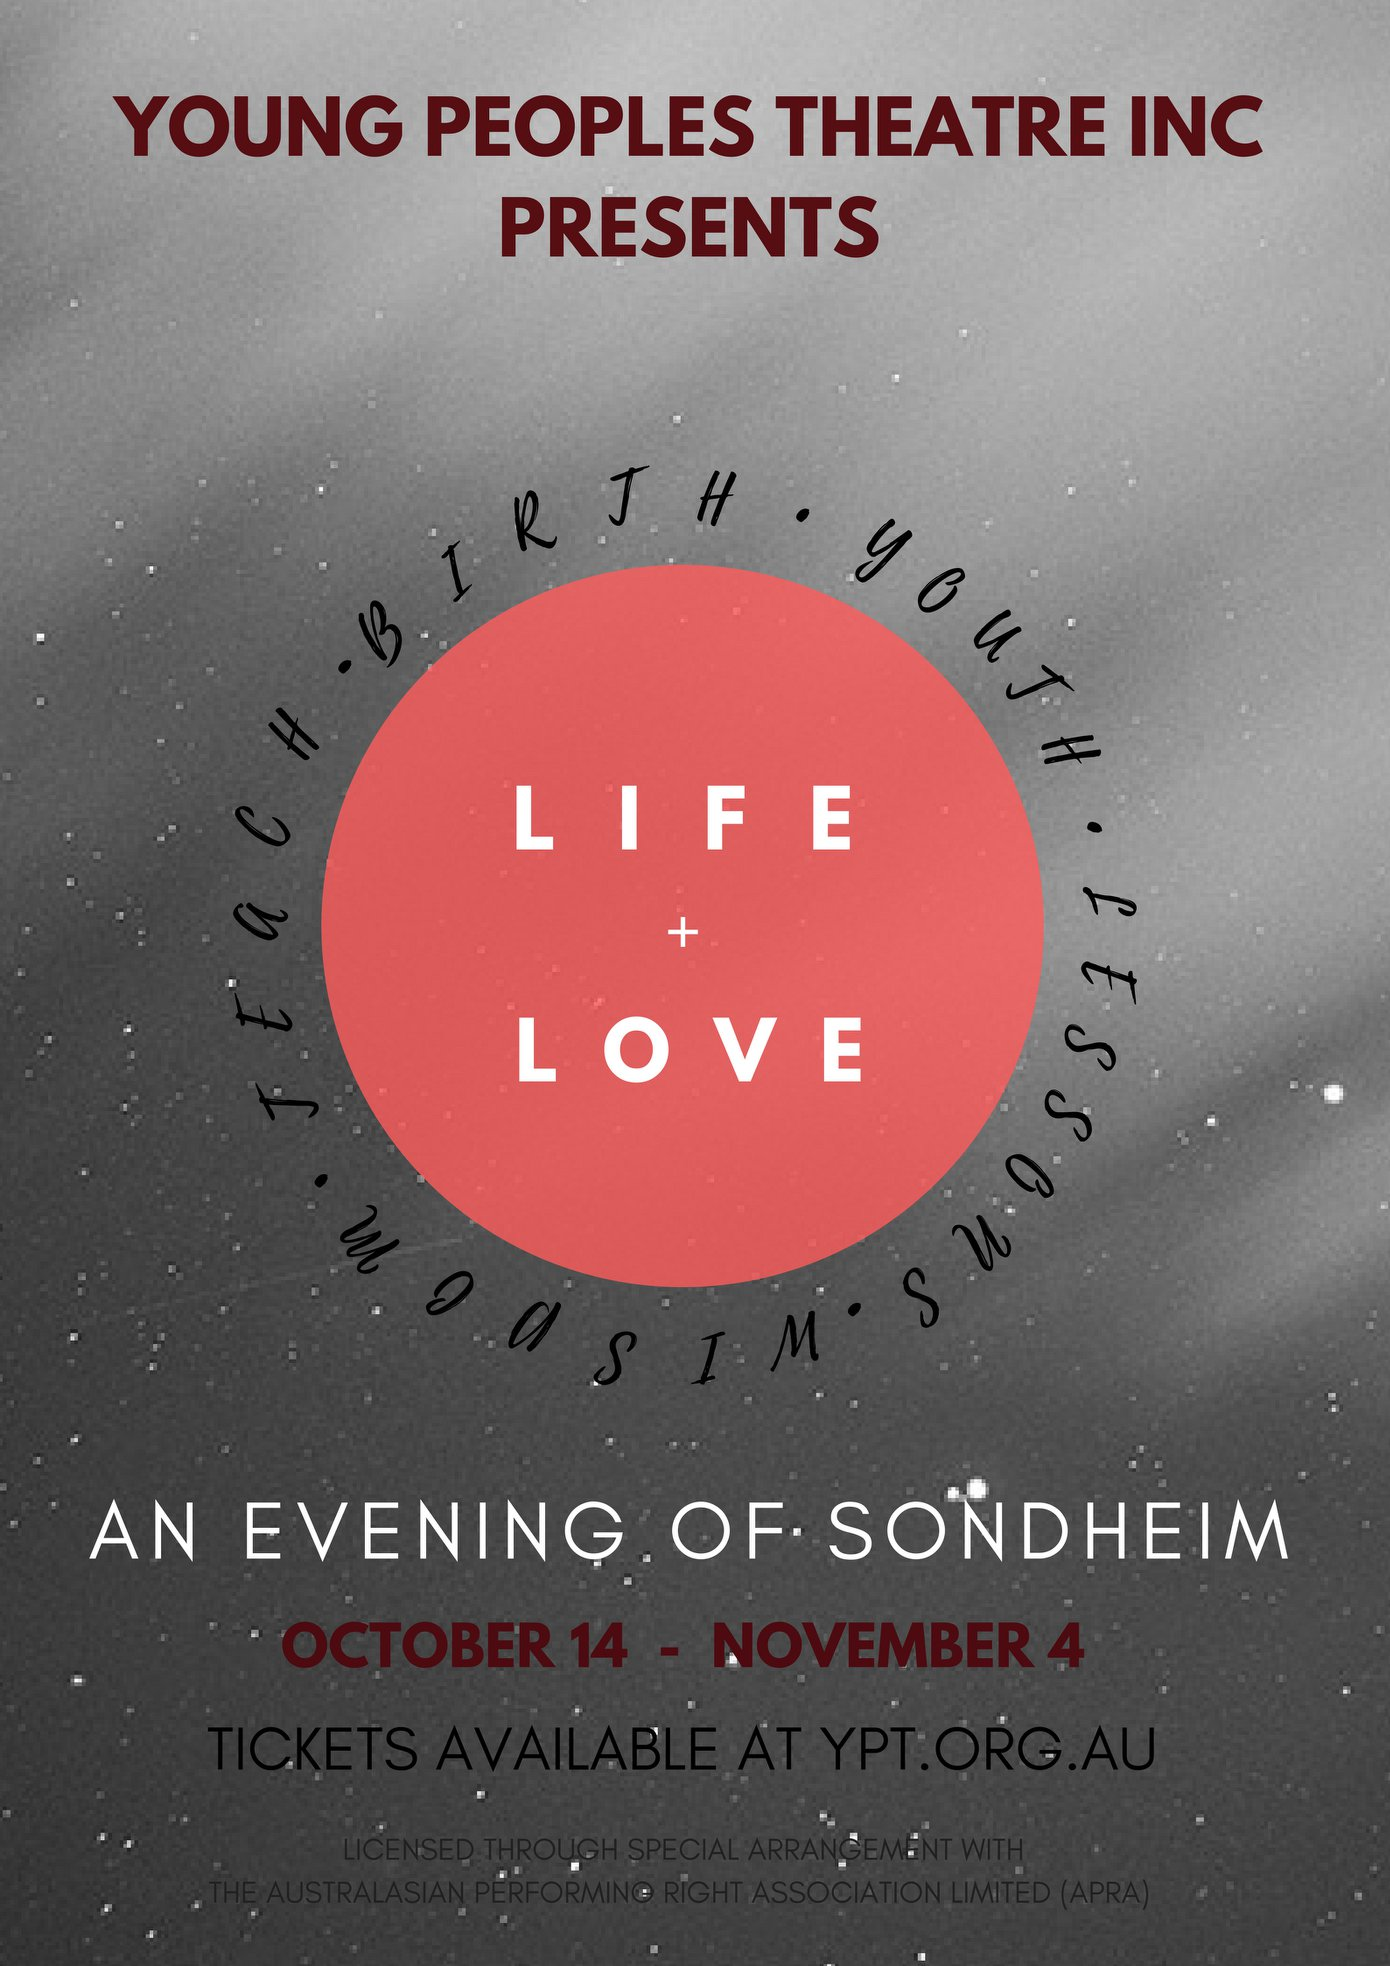 Life and Love Sondheim concert flier